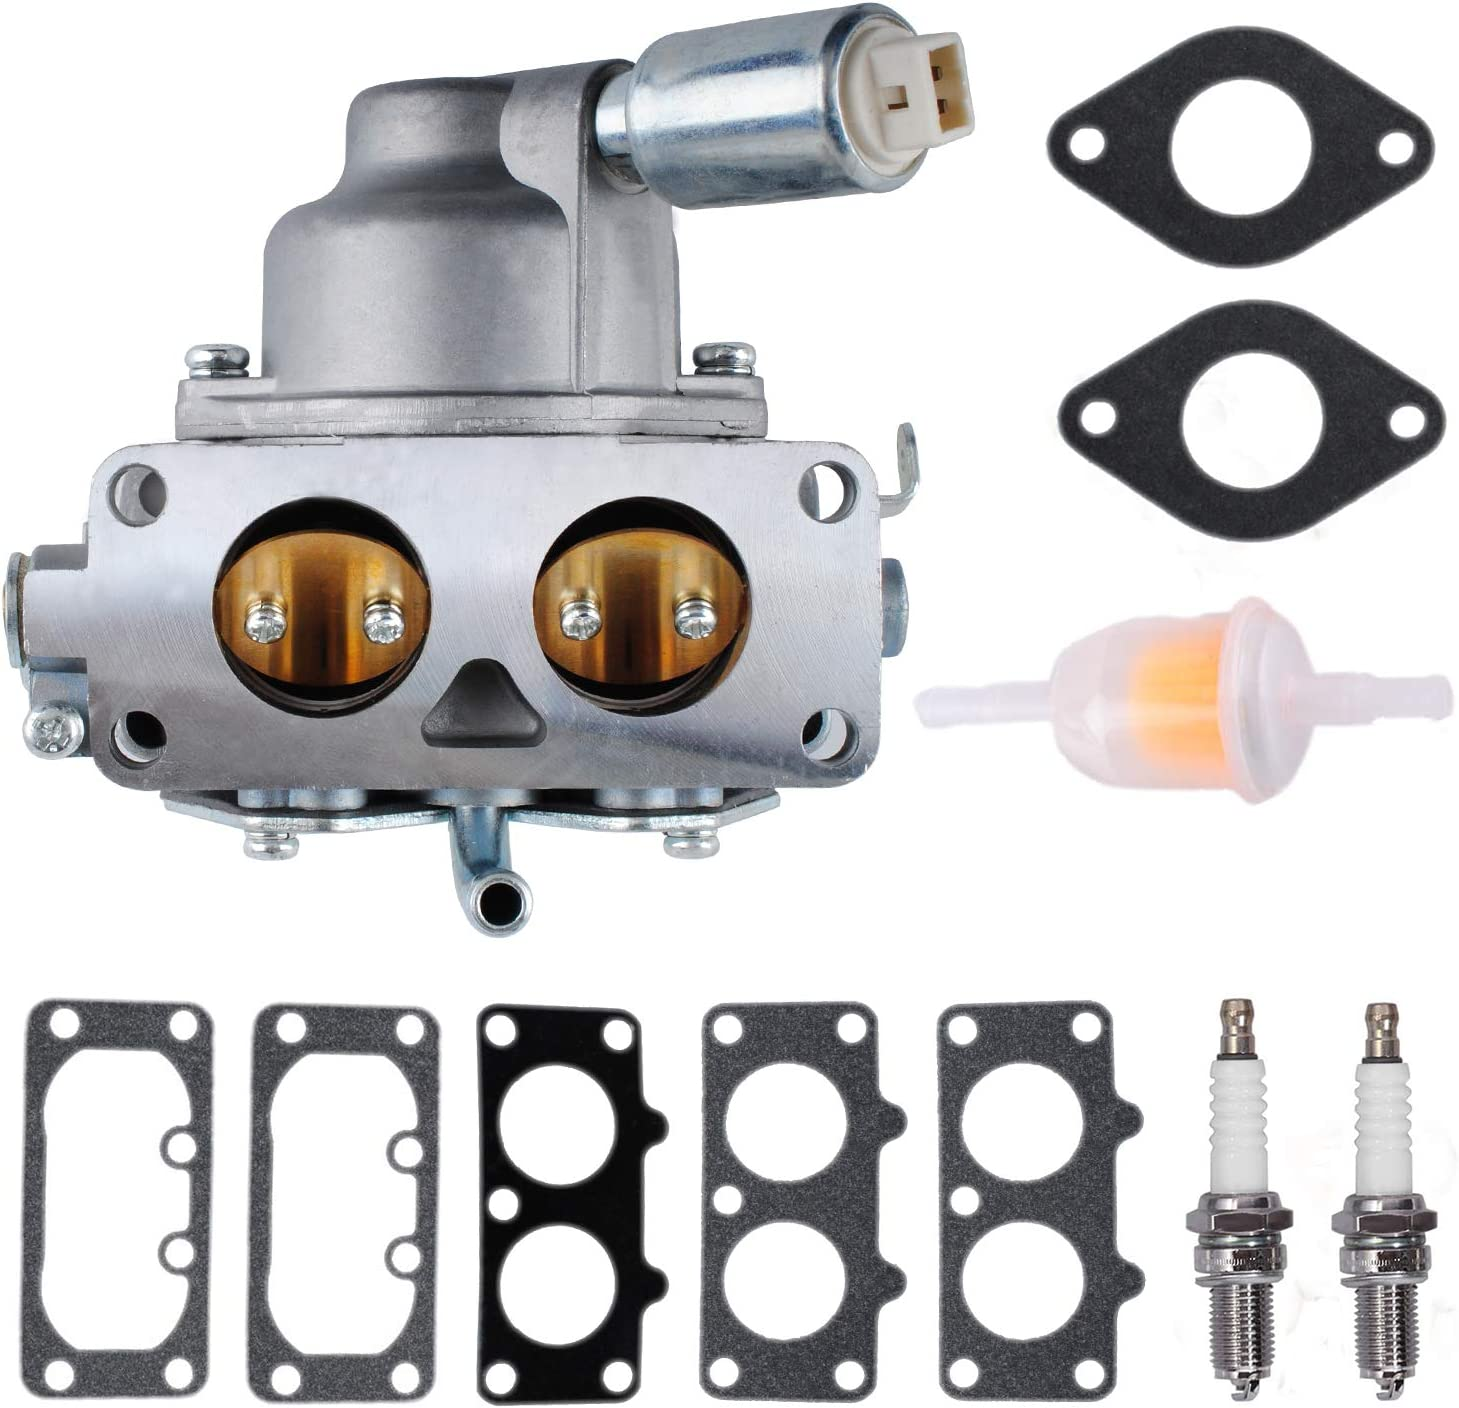 It is very We OFFer at cheap prices popular Gekufa 796227 Carburetor Carb with Gasket Br Compatible Kit